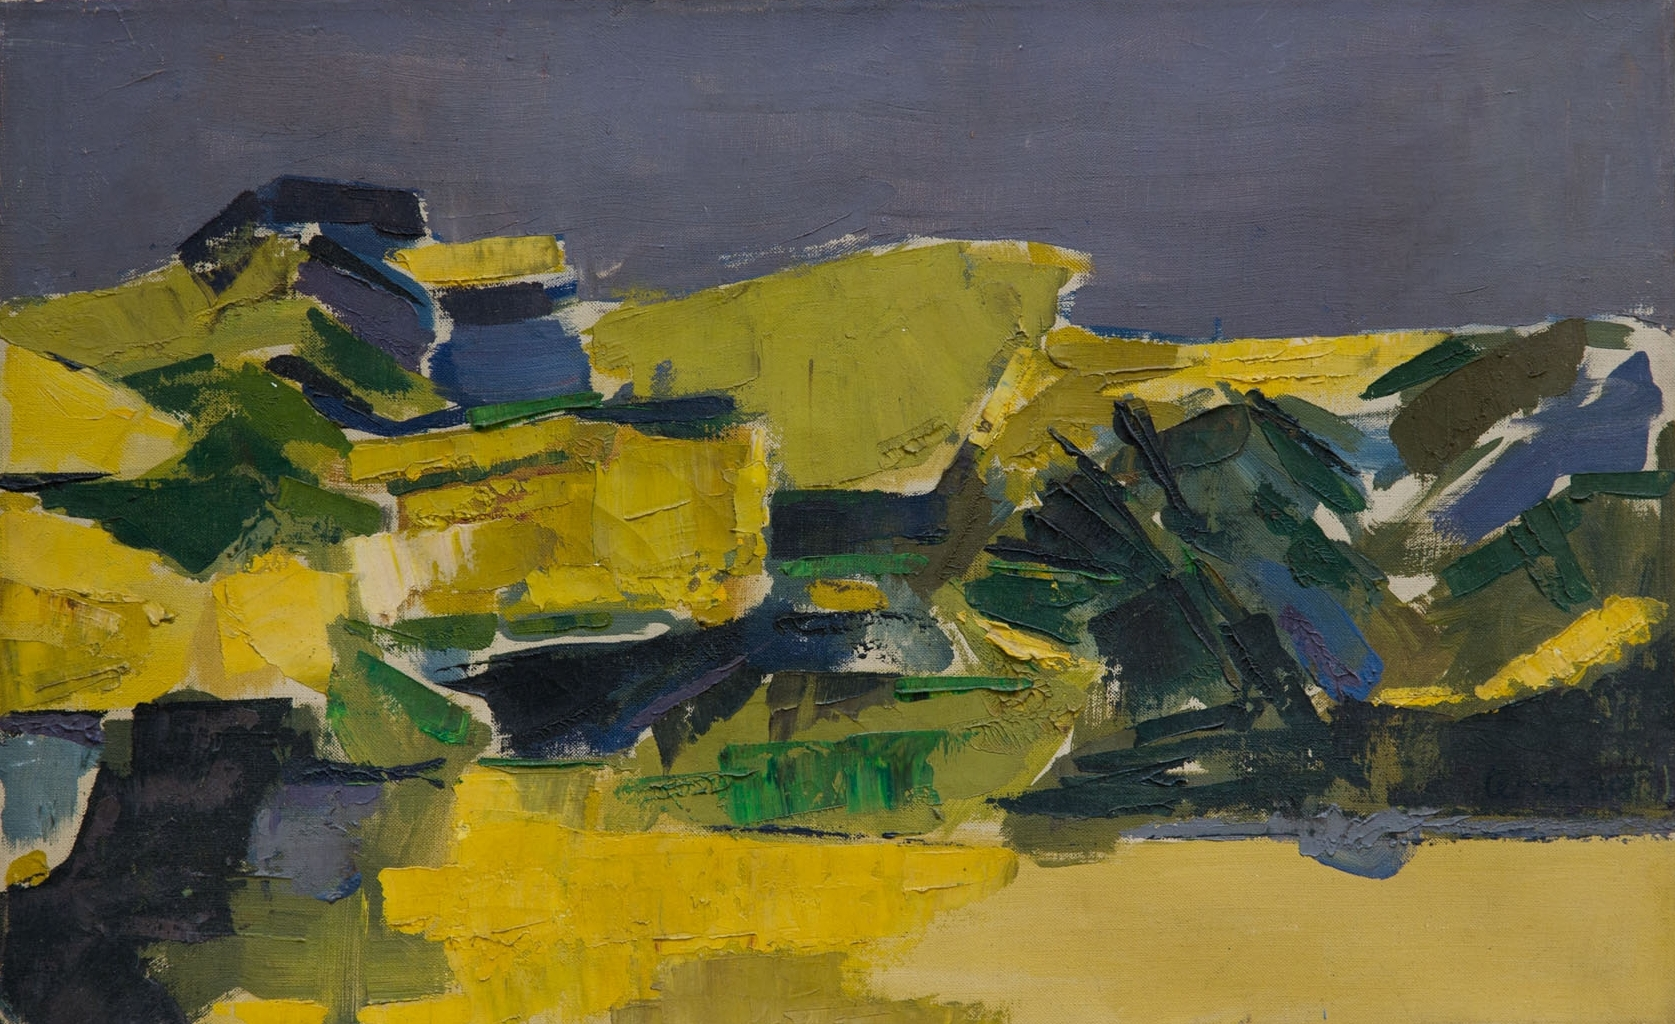 Untitled, 1968, Oil on canvas, 15 x 24 in